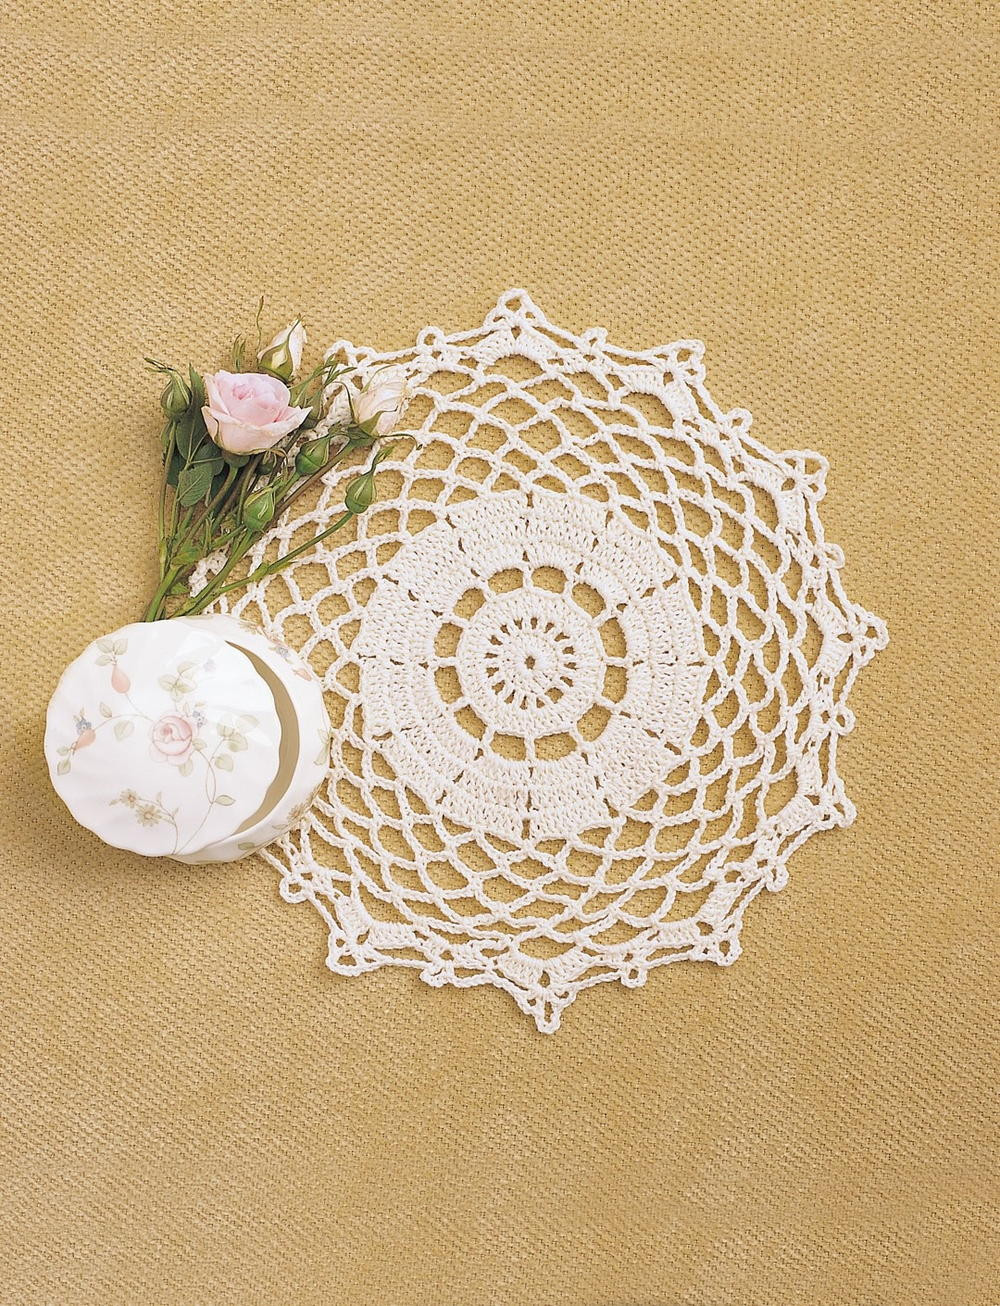 Elegant Pretty Doily Crochet Pattern Pretty Crochet Stitches Of Incredible 48 Pics Pretty Crochet Stitches